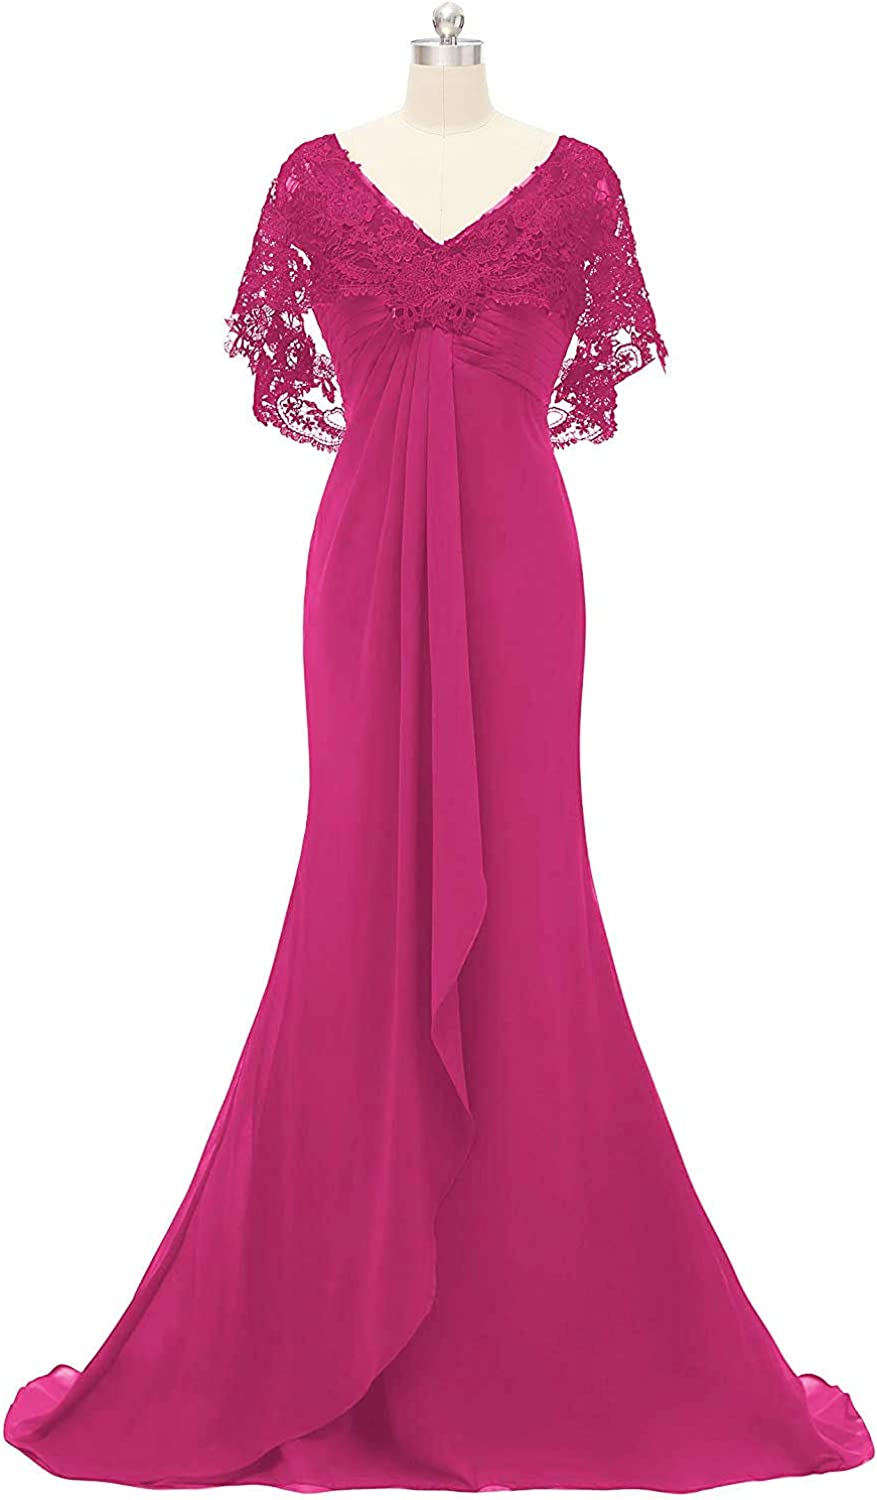 DINGZAN Mermaid Mother of The Bride Dresses Lace Short Sleeve Cape Prom Gowns